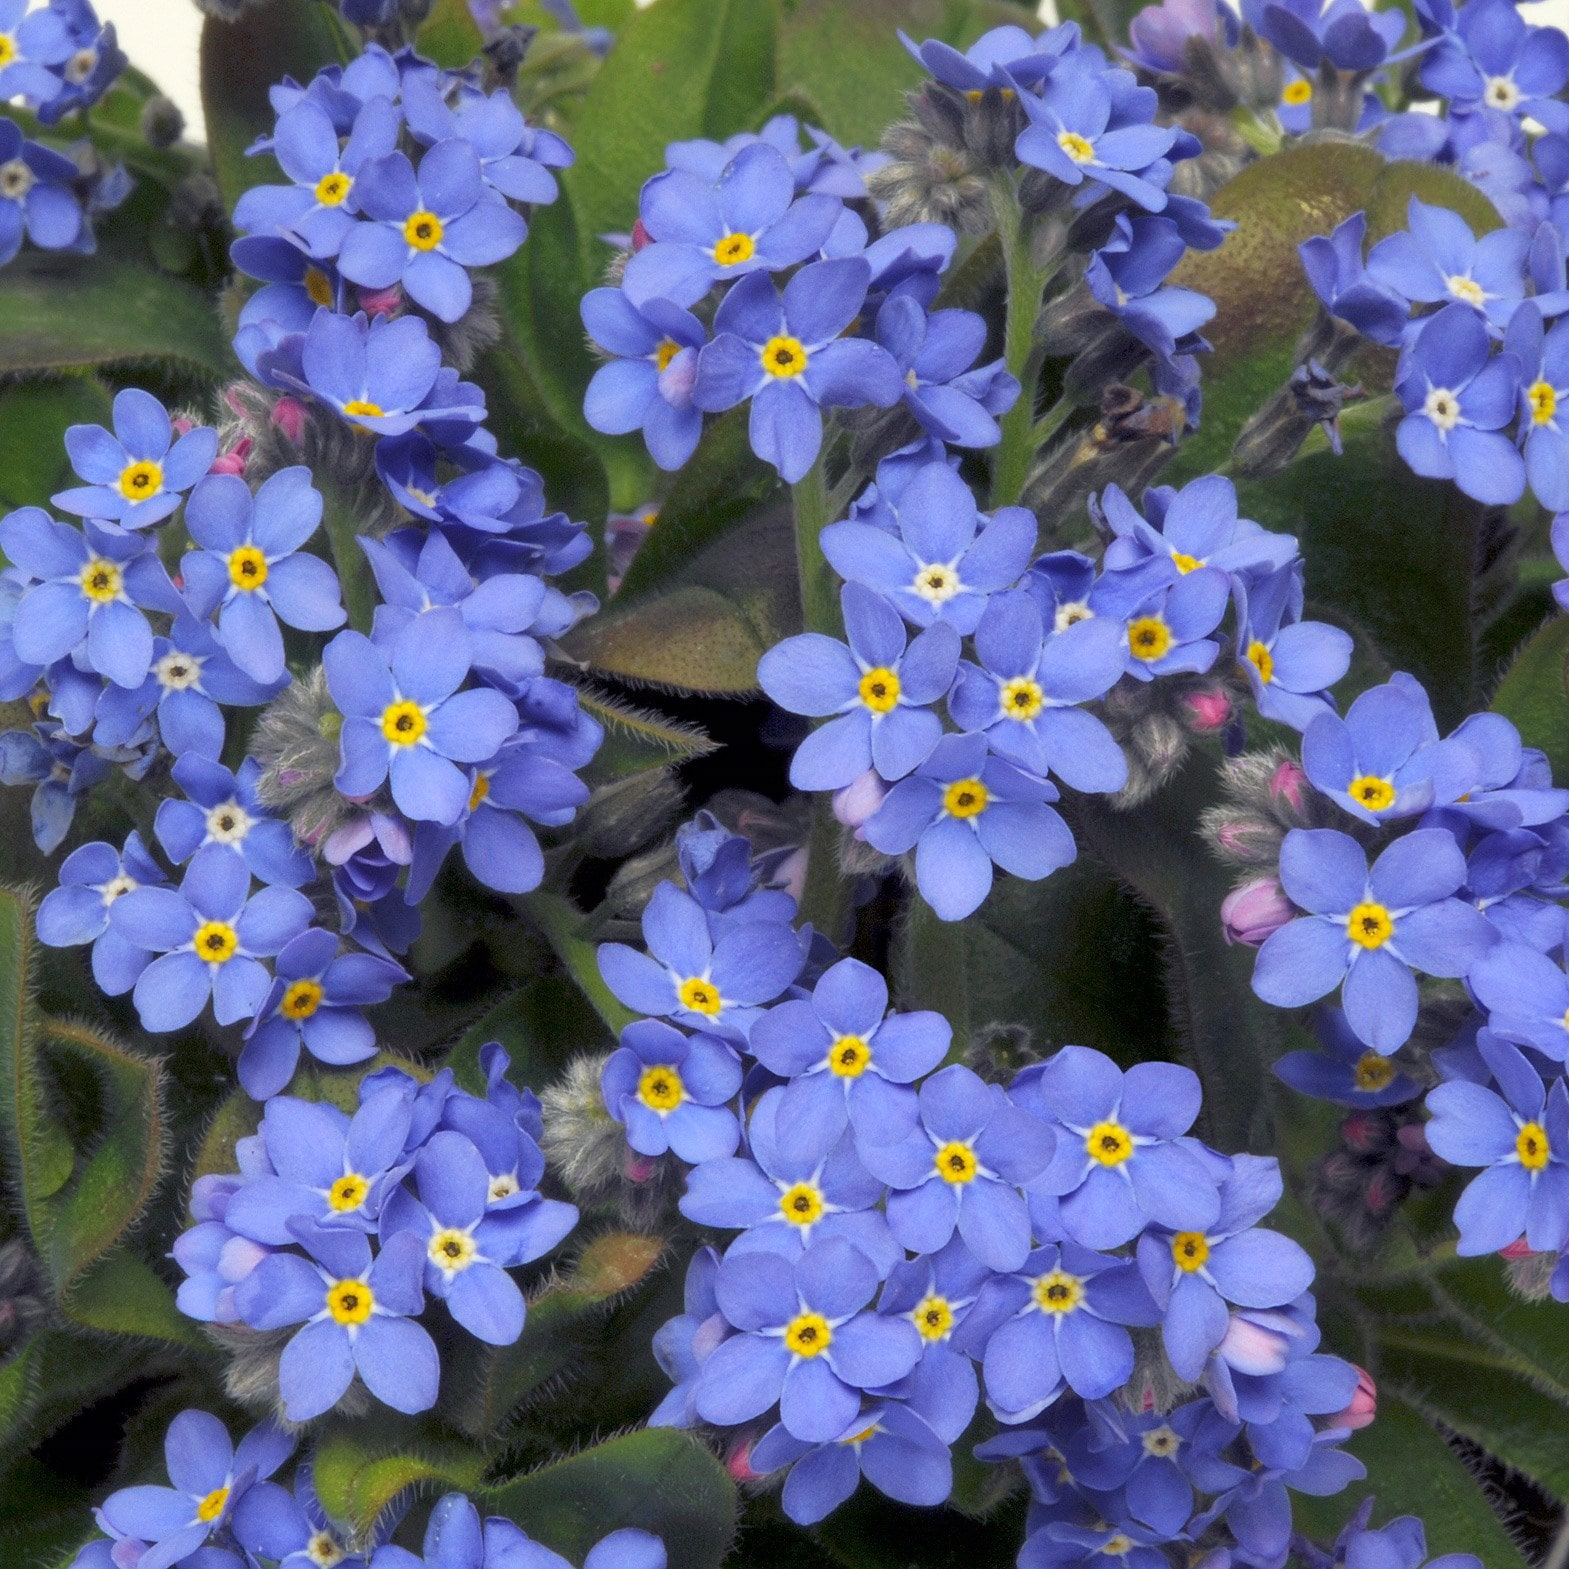 Buy 40 plus 20 FREE large plug plants Forget Me Not Myosotis Sylvia     Forget Me Not  Sylvia Blue